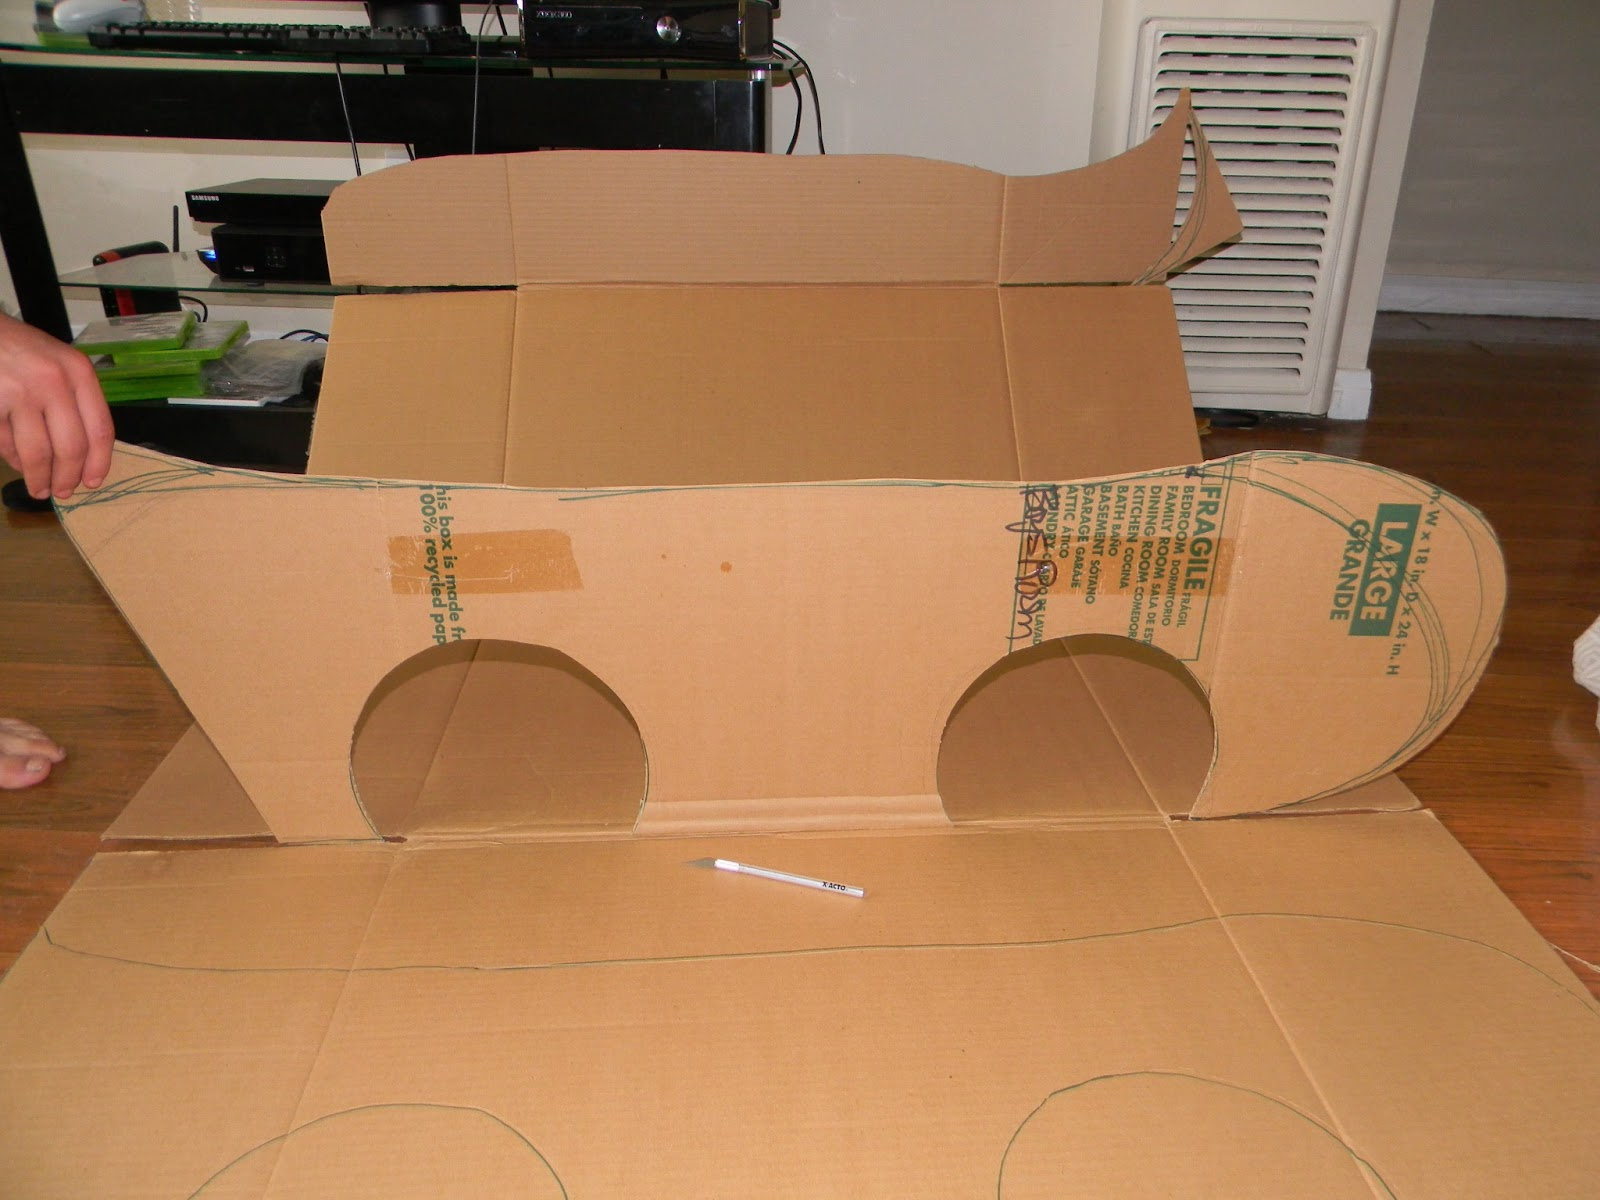 Craft diy cardboard race car tutorial